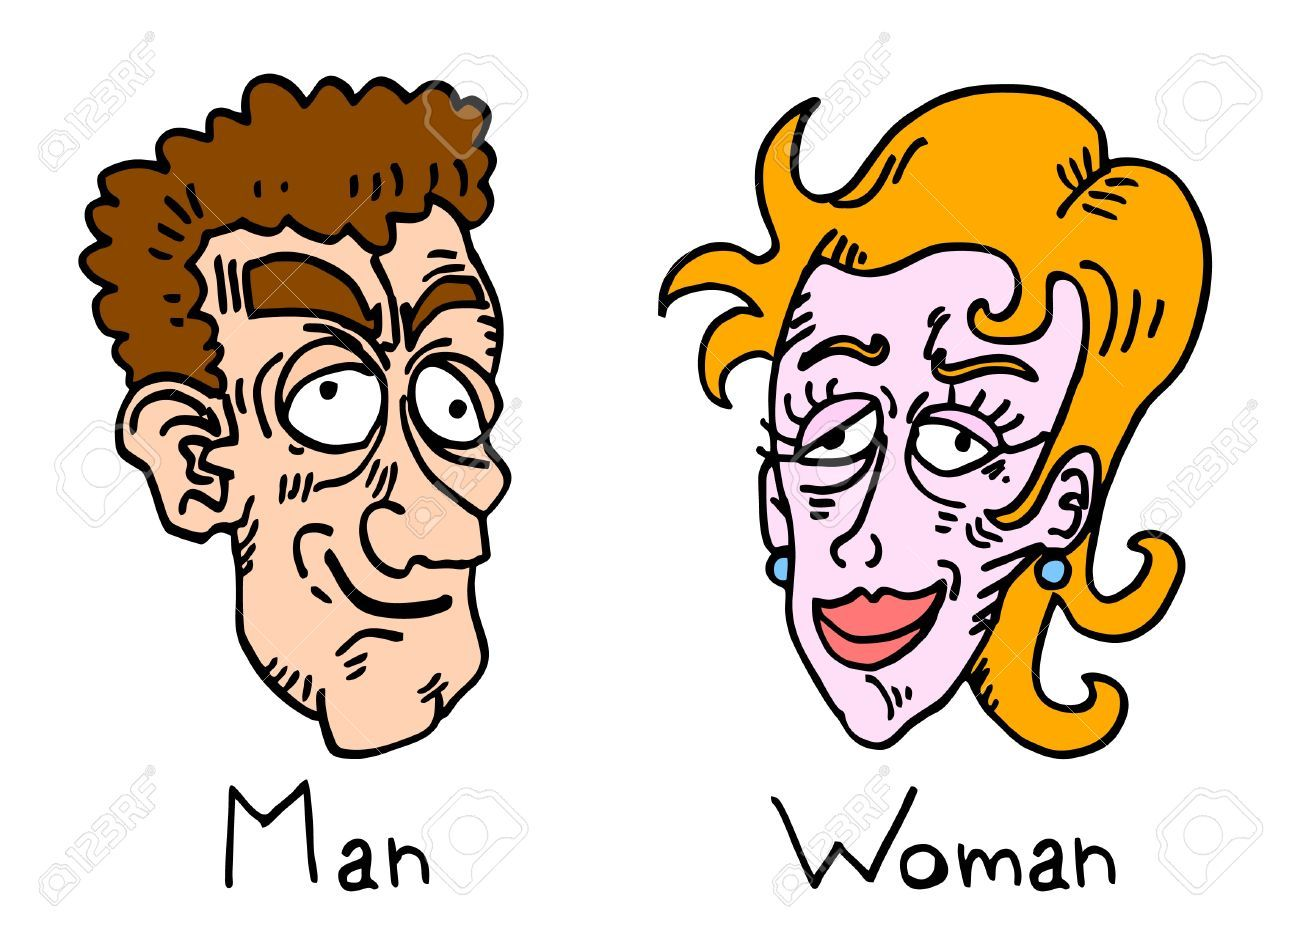 Ugly face clipart 5 » Clipart Portal.